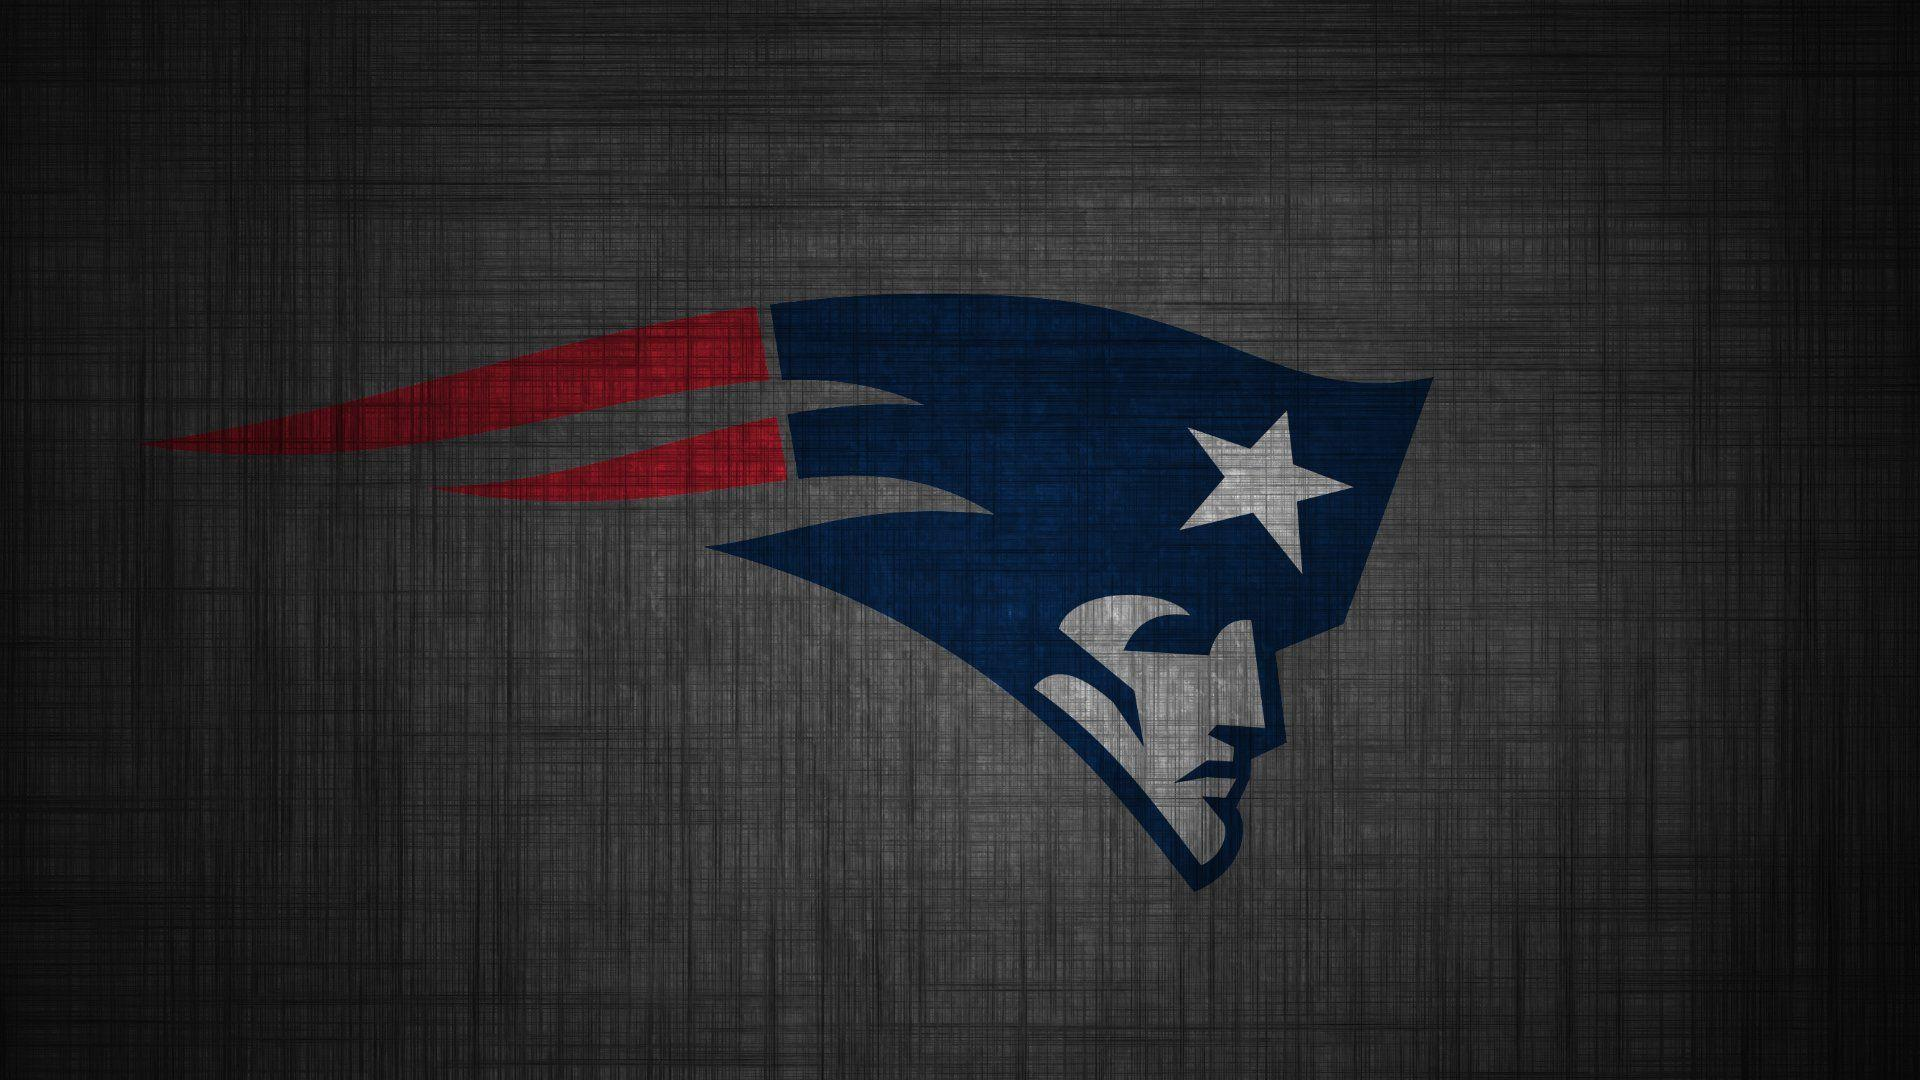 New England Patriots 3D Wallpaper - WallpaperSafari